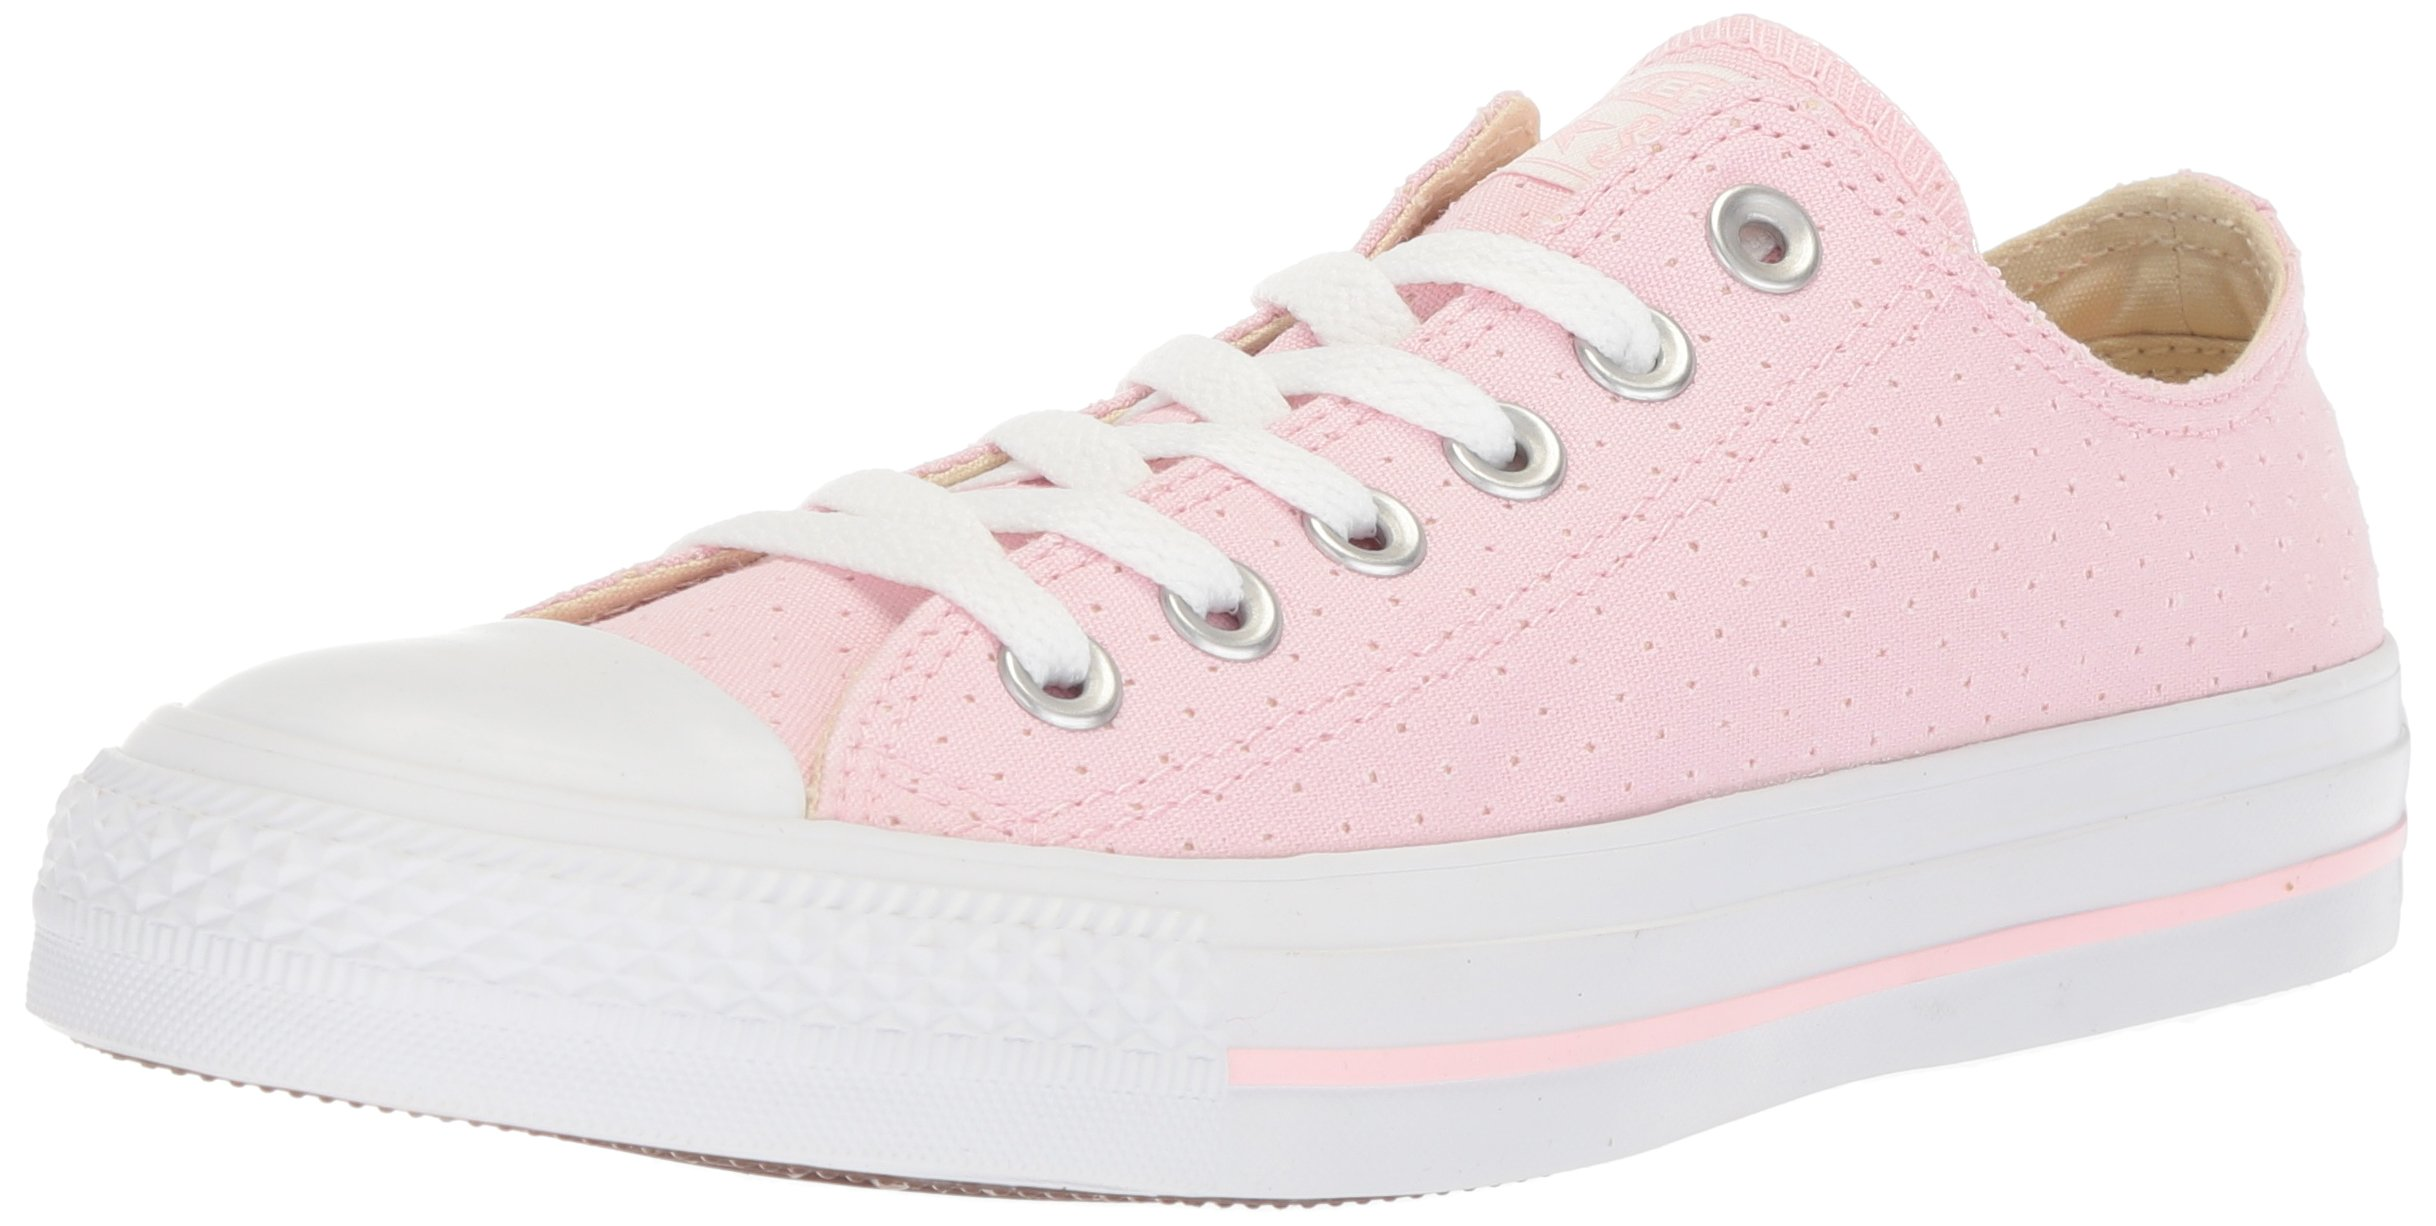 f40bc55a2a9f Get Quotations · Converse Women s Chuck Taylor All Star Perforated Canvas  Low Top Sneaker